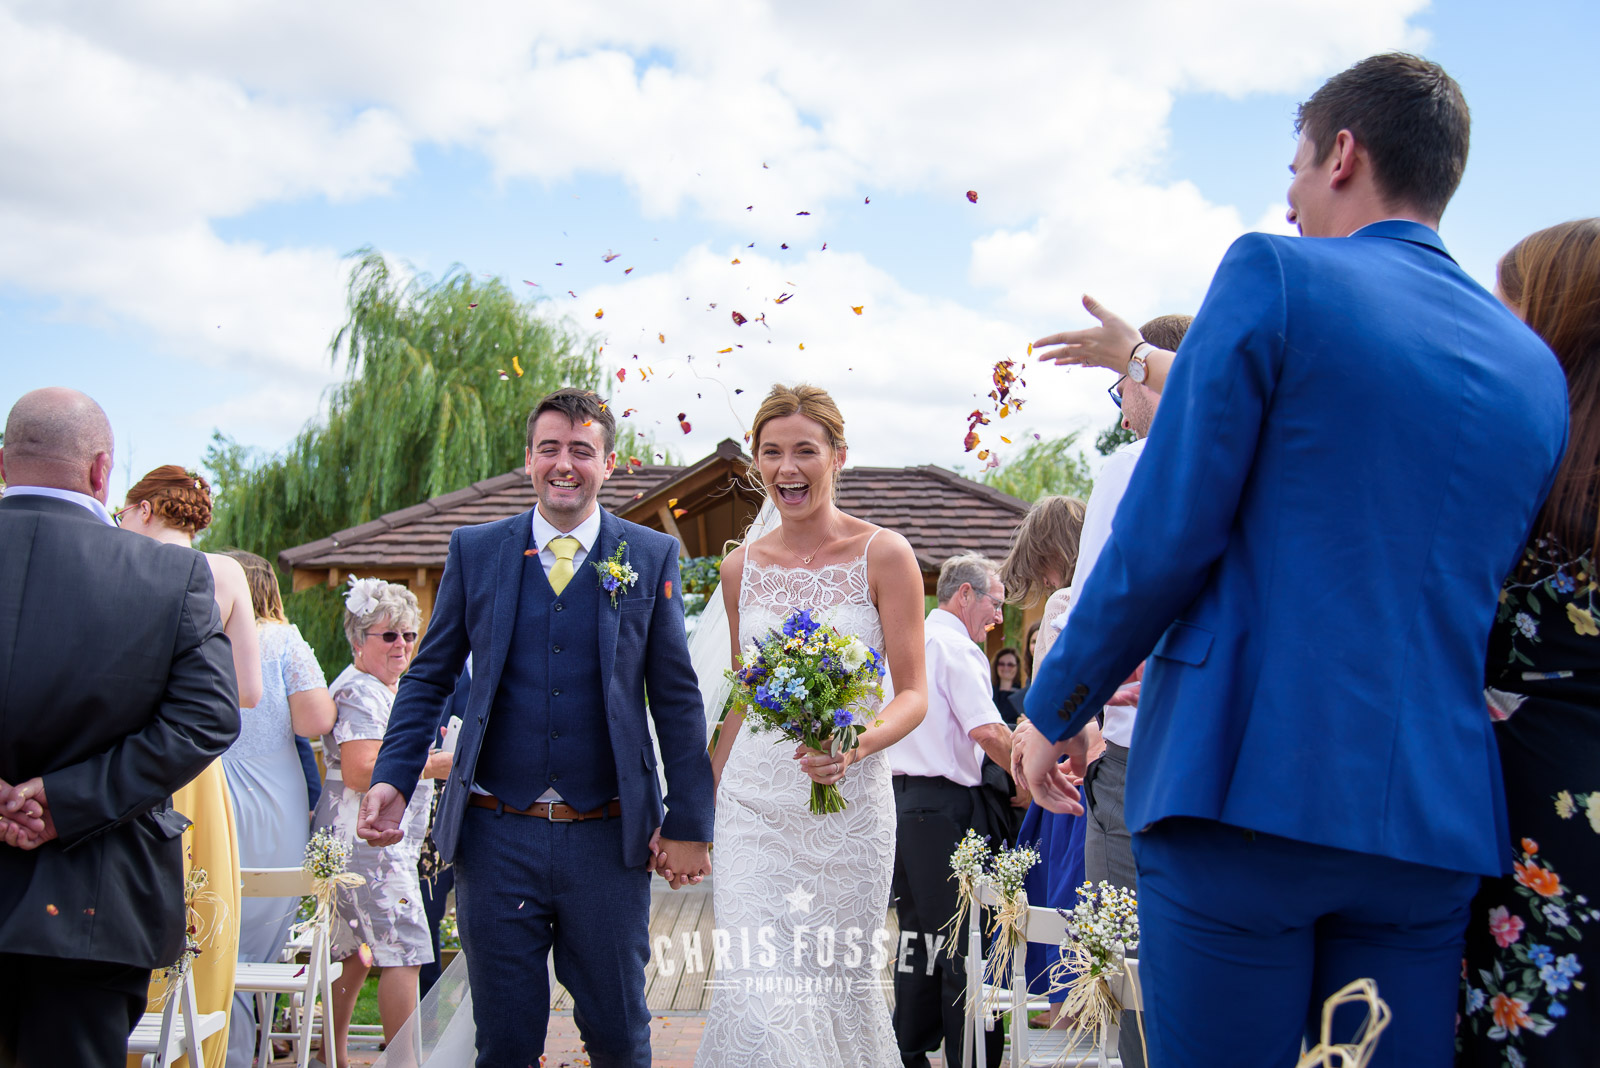 Wootton Park Stratford Warwickshire Wedding Photographer by Chris Fossey Photography